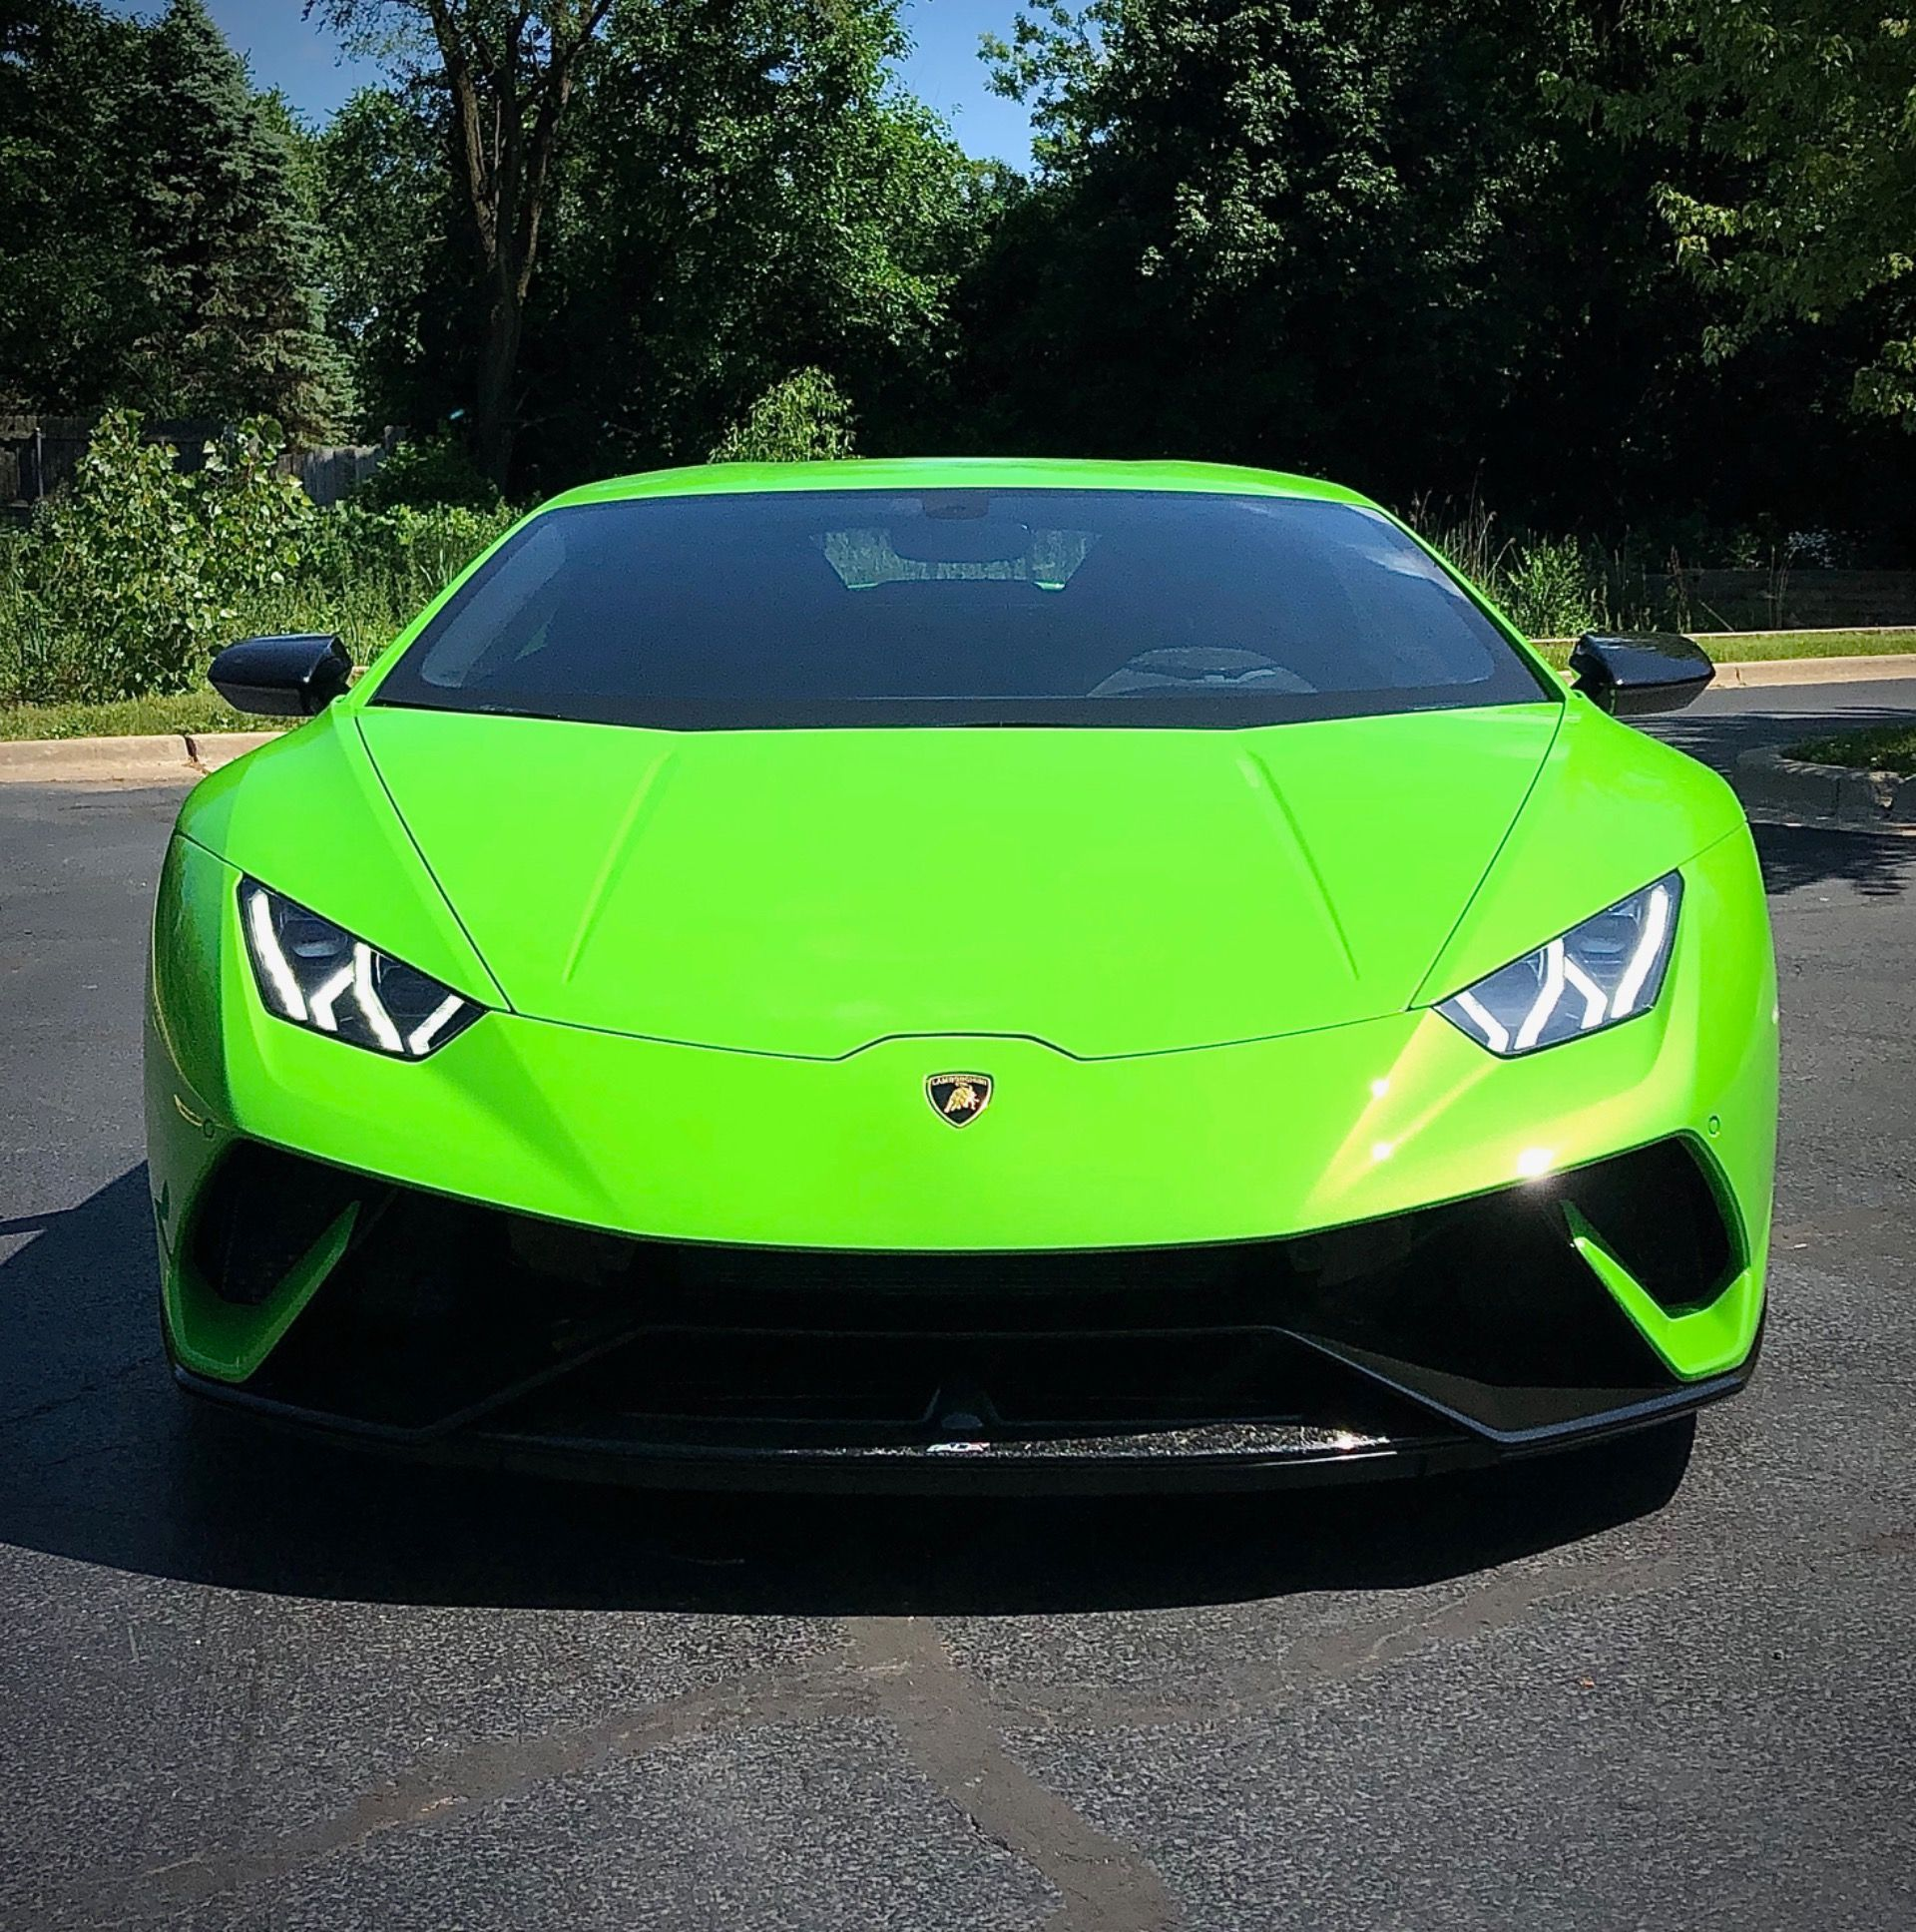 For Sale 2018 Lamborghini Huracan Lp640 4 Performante Coupe Chicago Motor Cars United States For Sale On Luxu Lamborghini Huracan Motor Car Lamborghini